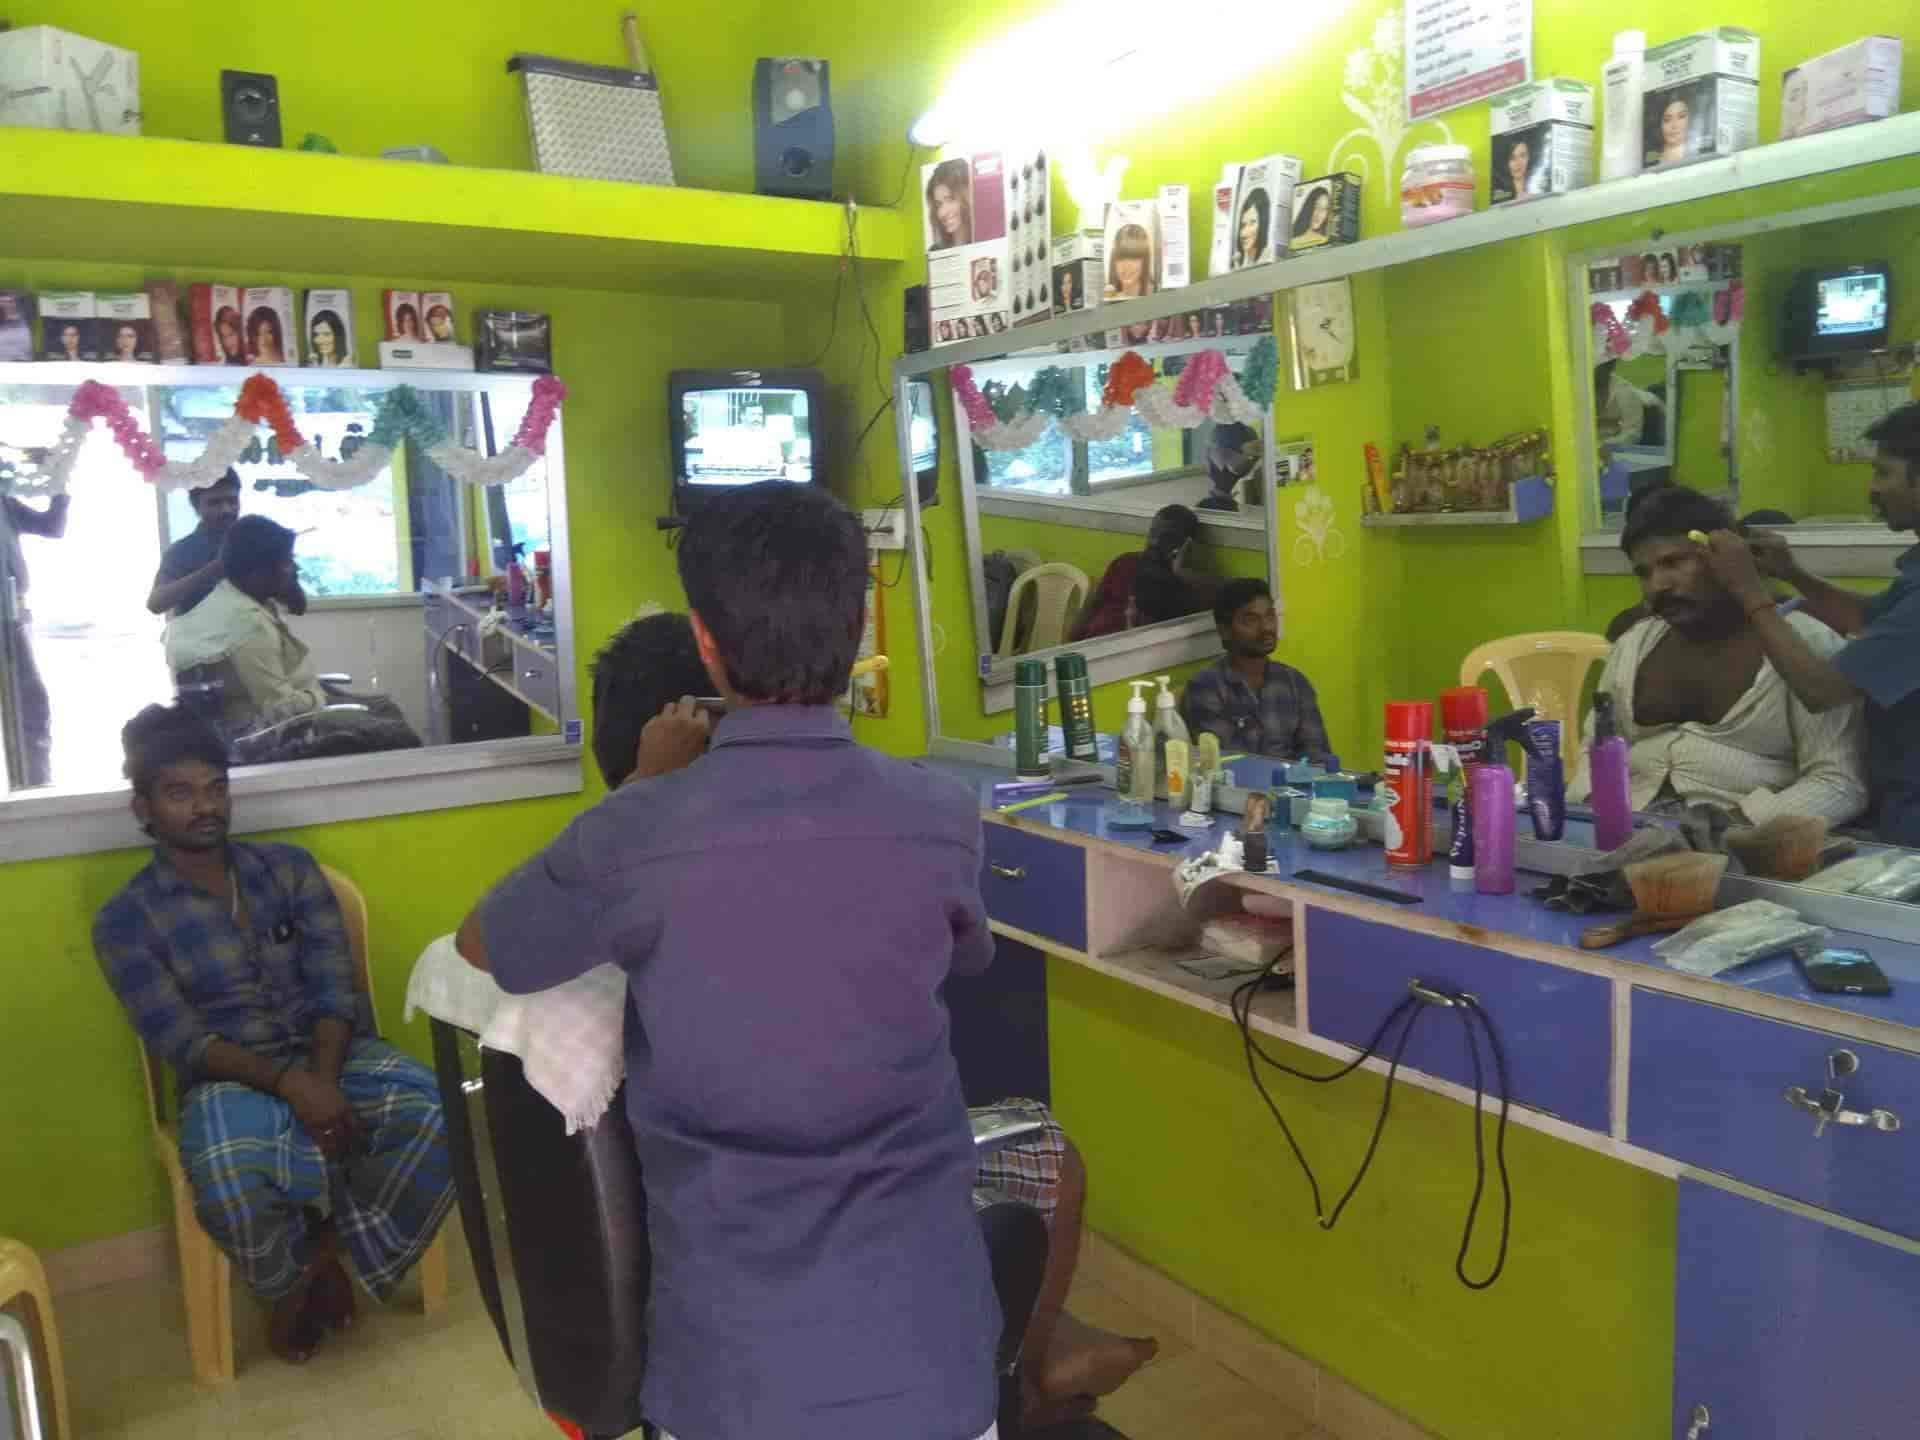 Lidl Salon Senthil Salon Photos Kottaiyur Kumbakonam Pictures